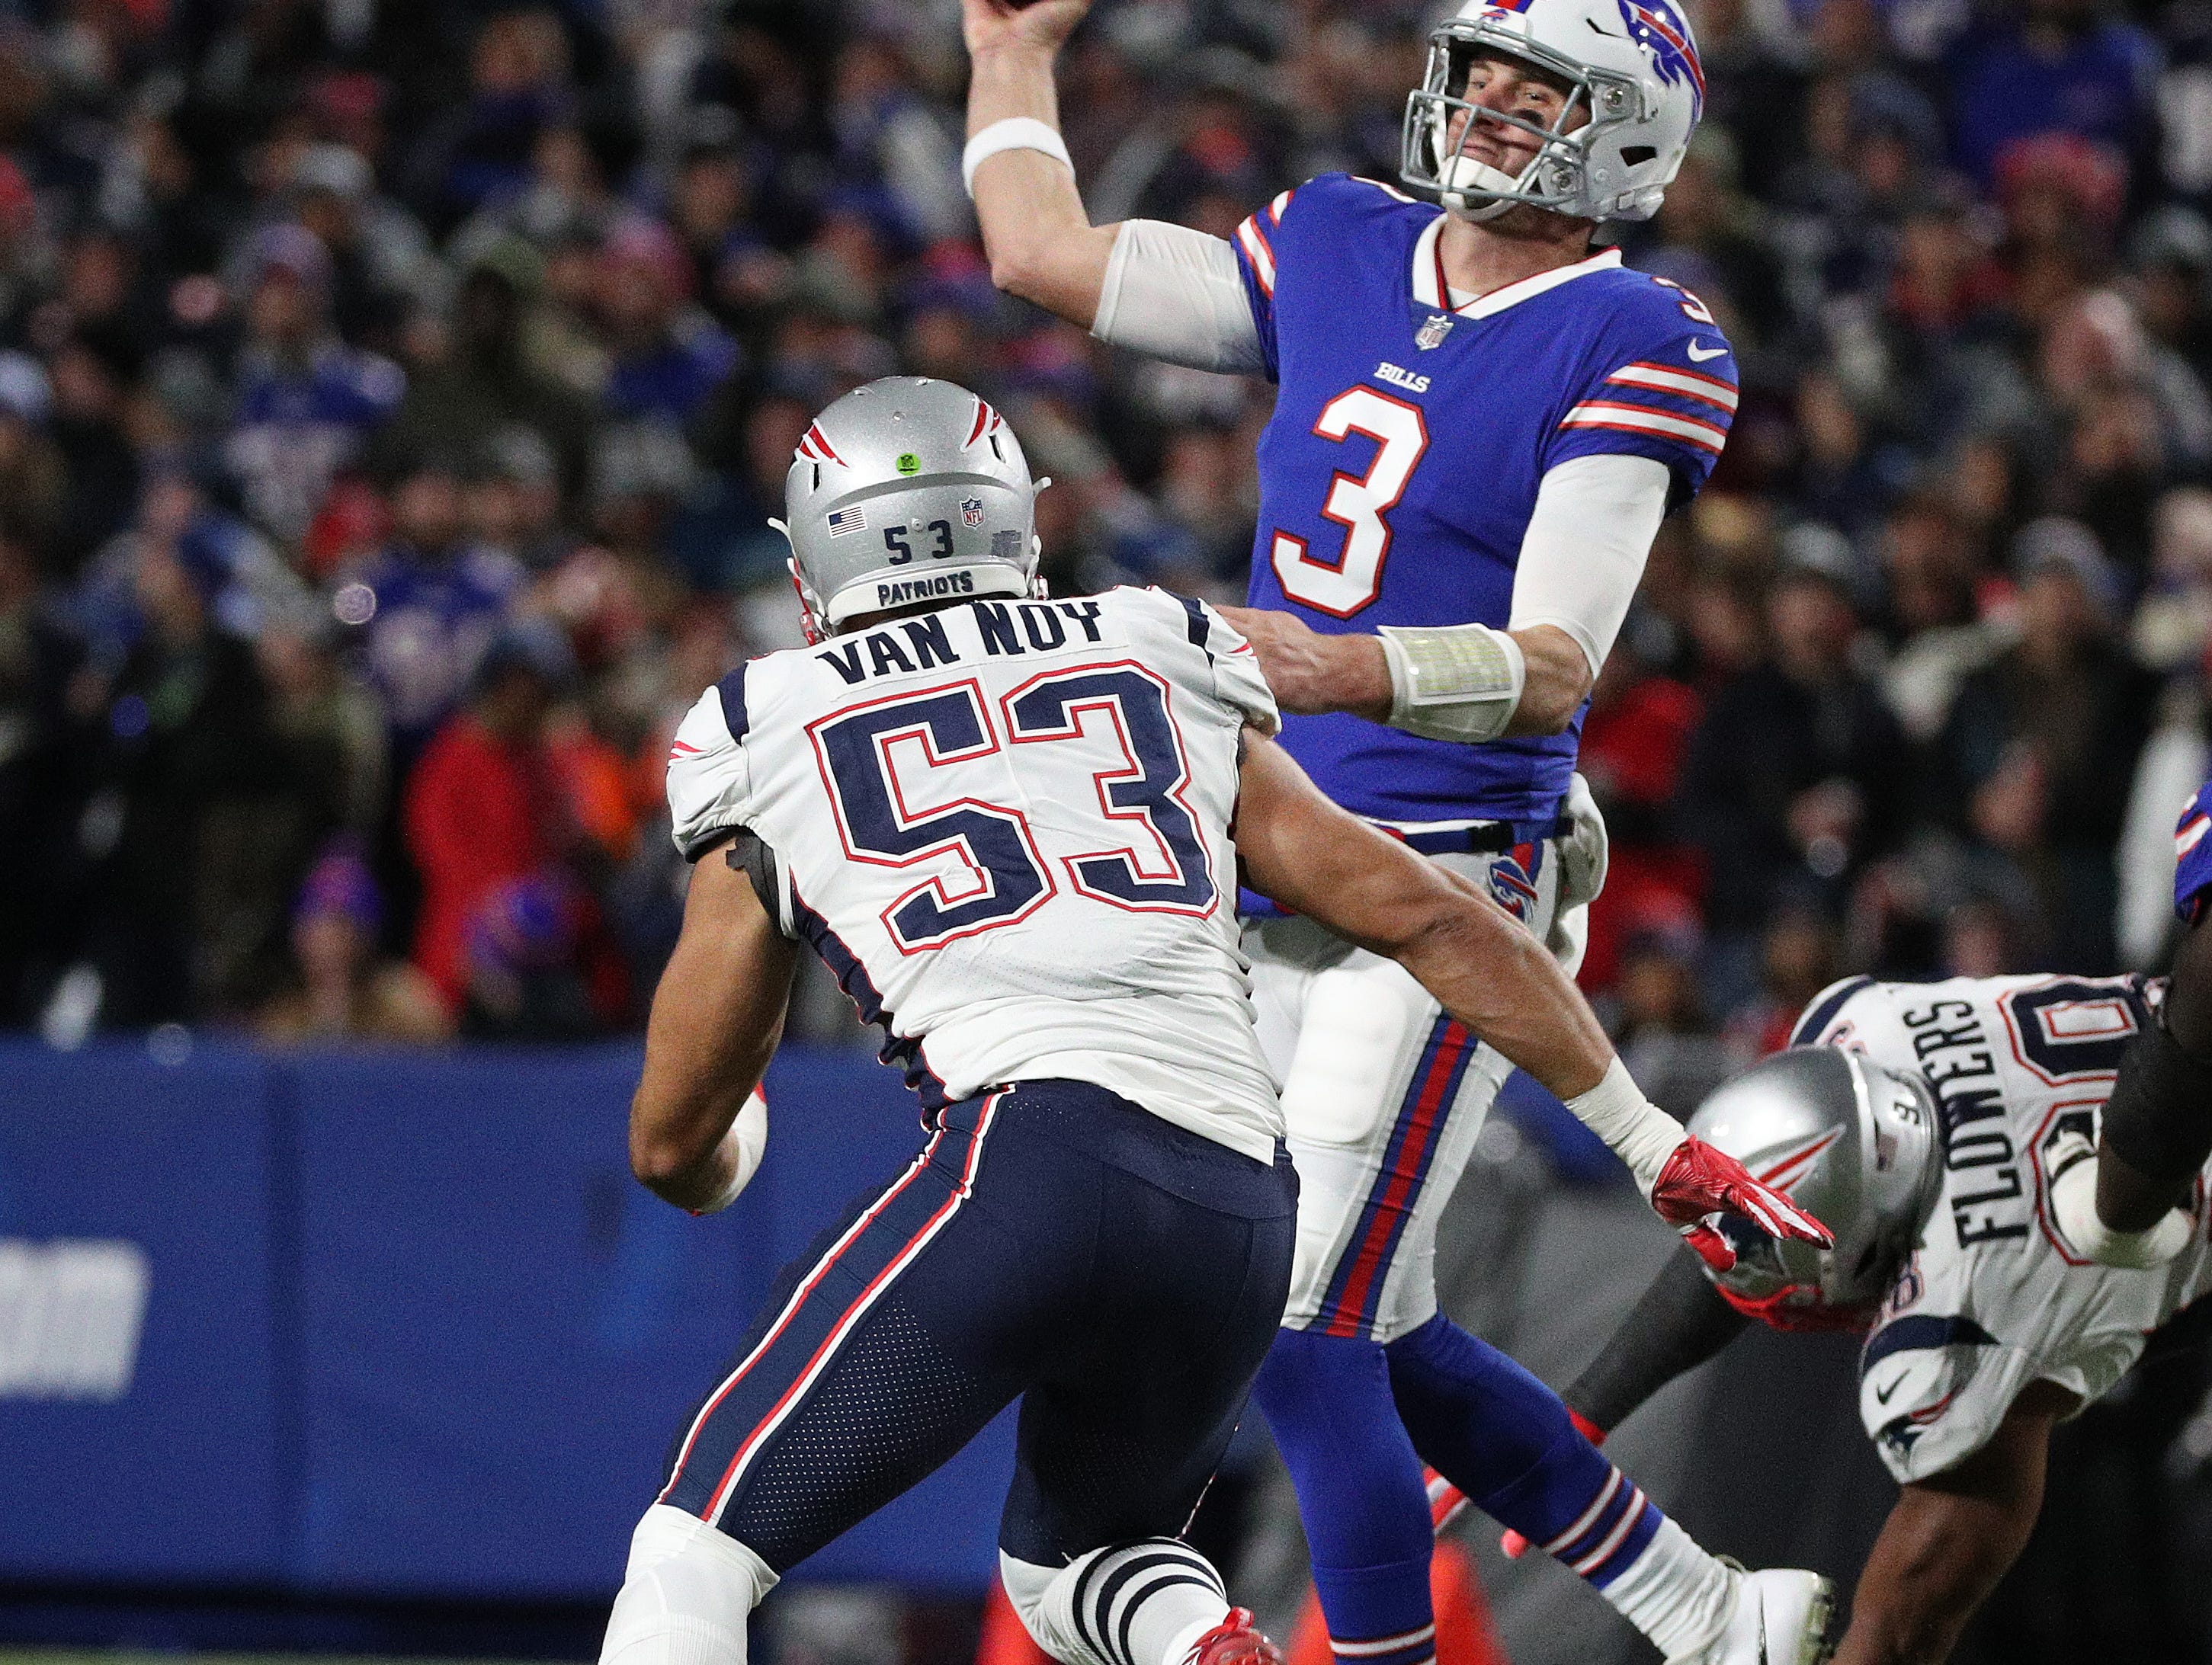 Bills quarterback Derek Anderson gets rid of the ball under pressure by Patriots Kyle Van Noy.